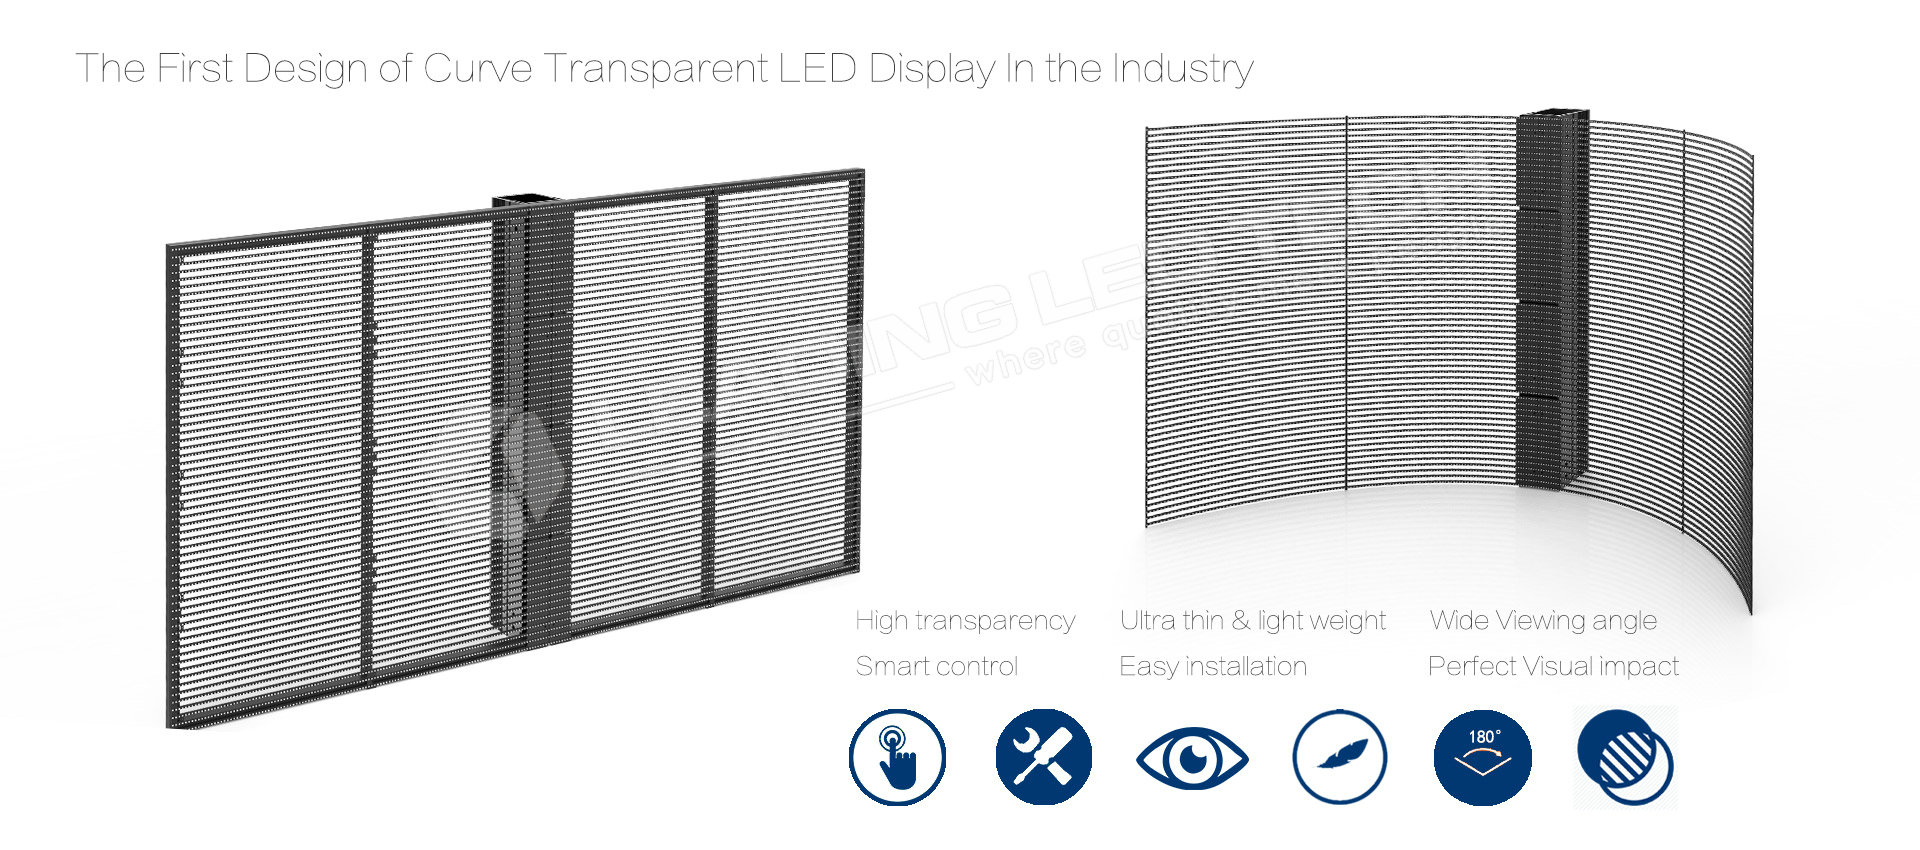 Soft transparent LED display curve transparent LED display